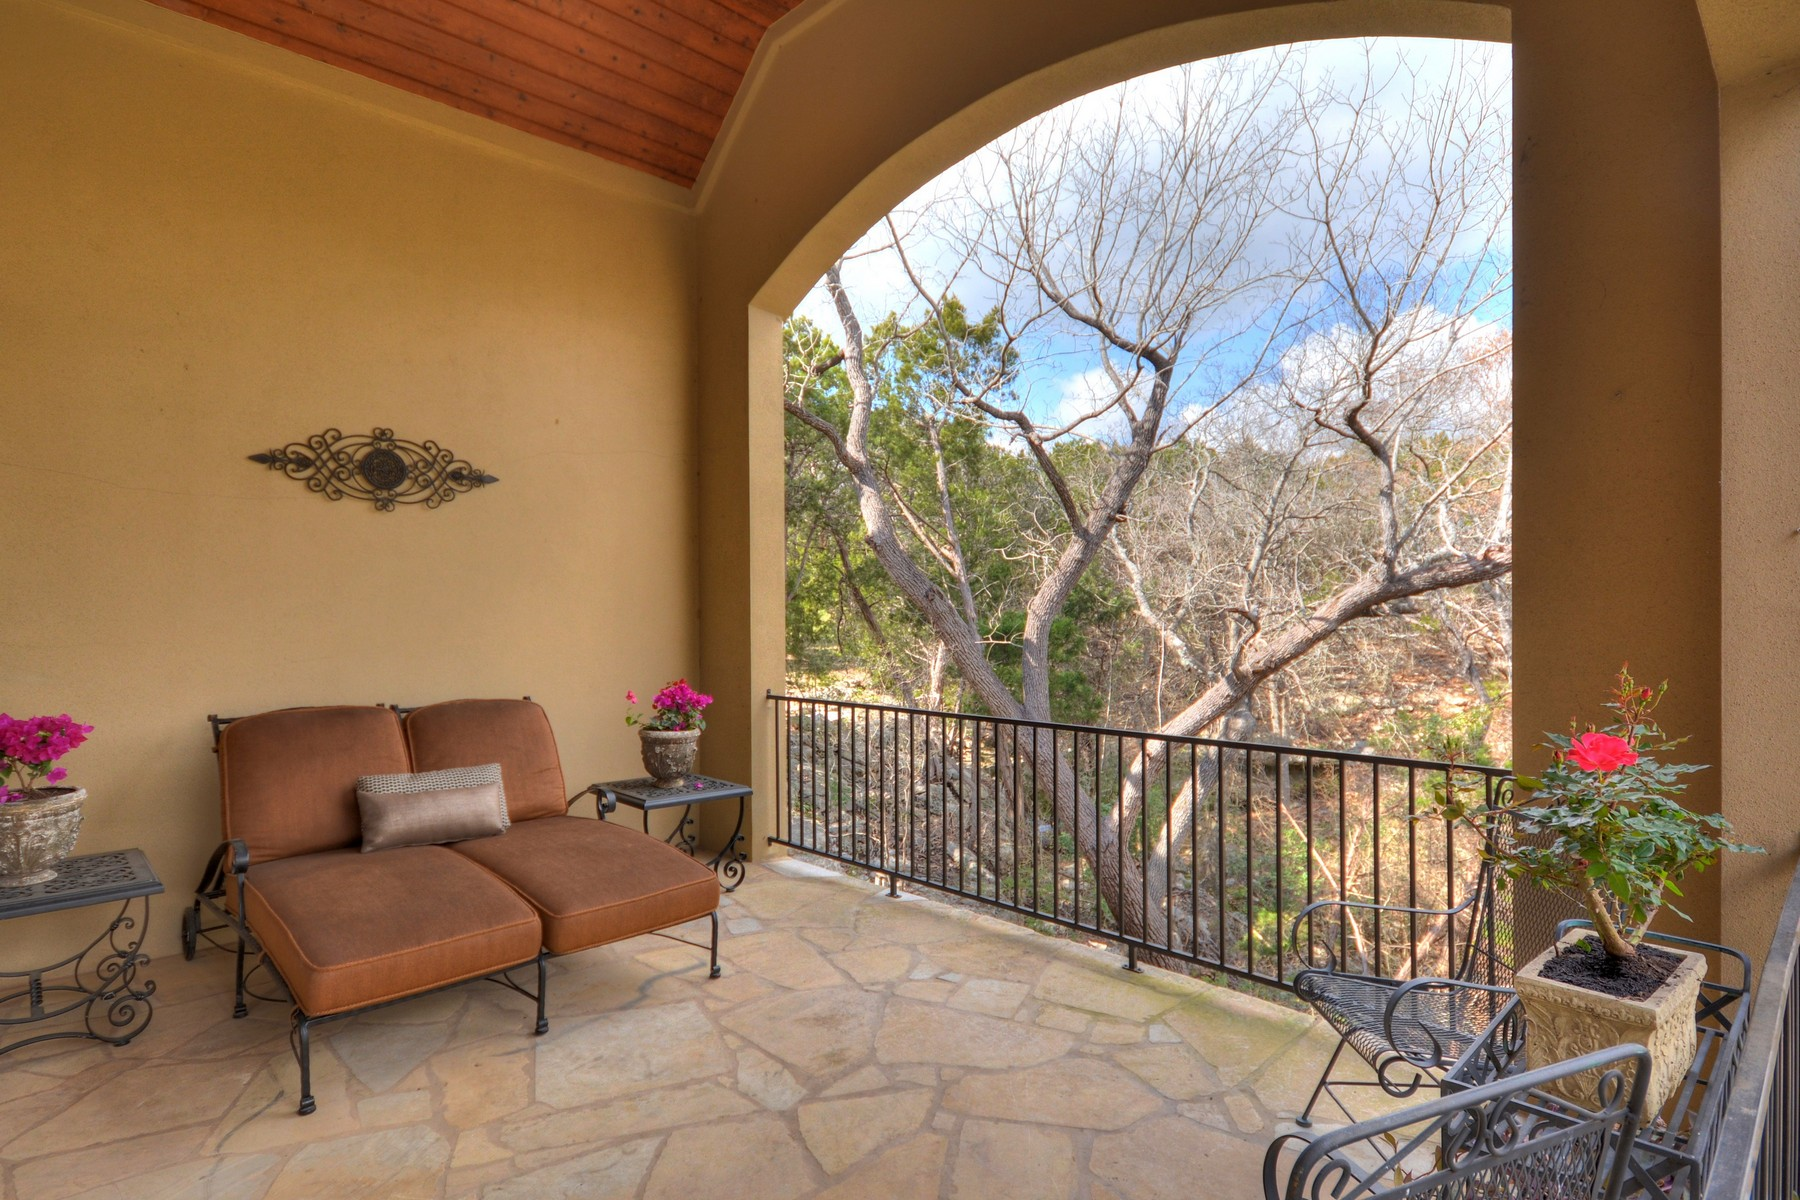 Additional photo for property listing at Custom One Story 9213 Eddy Cv Austin, Texas 78735 United States